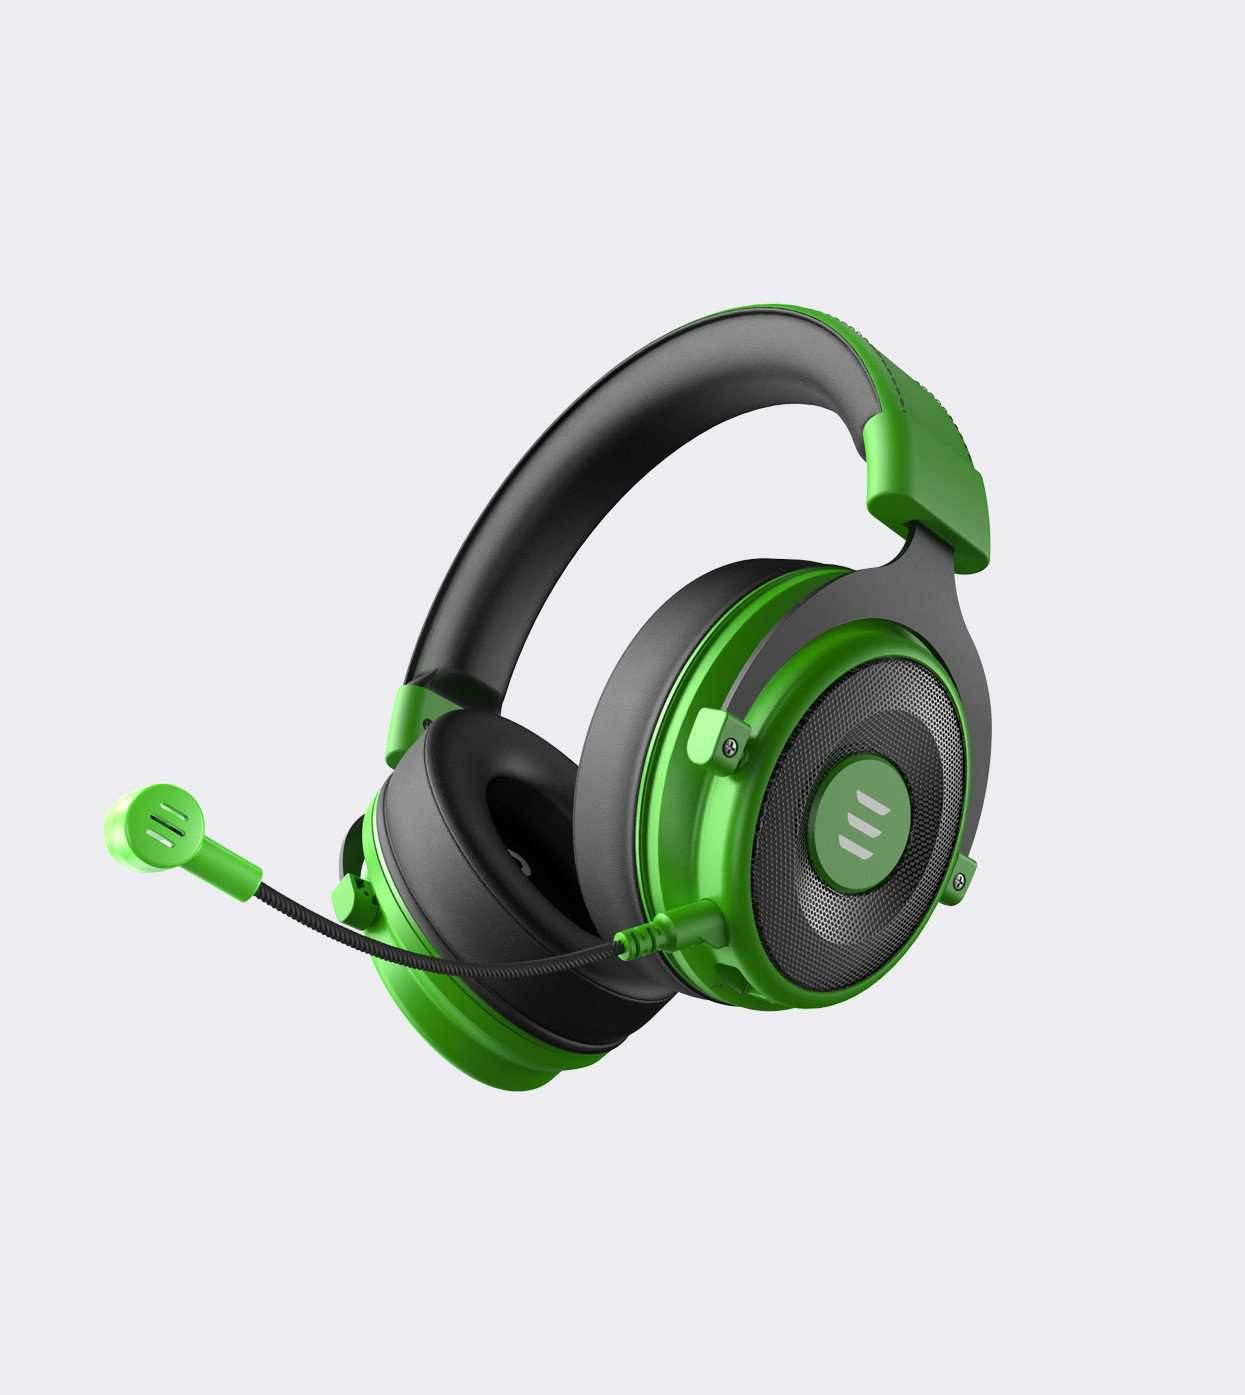 EKSA E900 Pro 7.1 Virtual Surround Sound Gaming Headset for PC, PS4, PS5(Green)